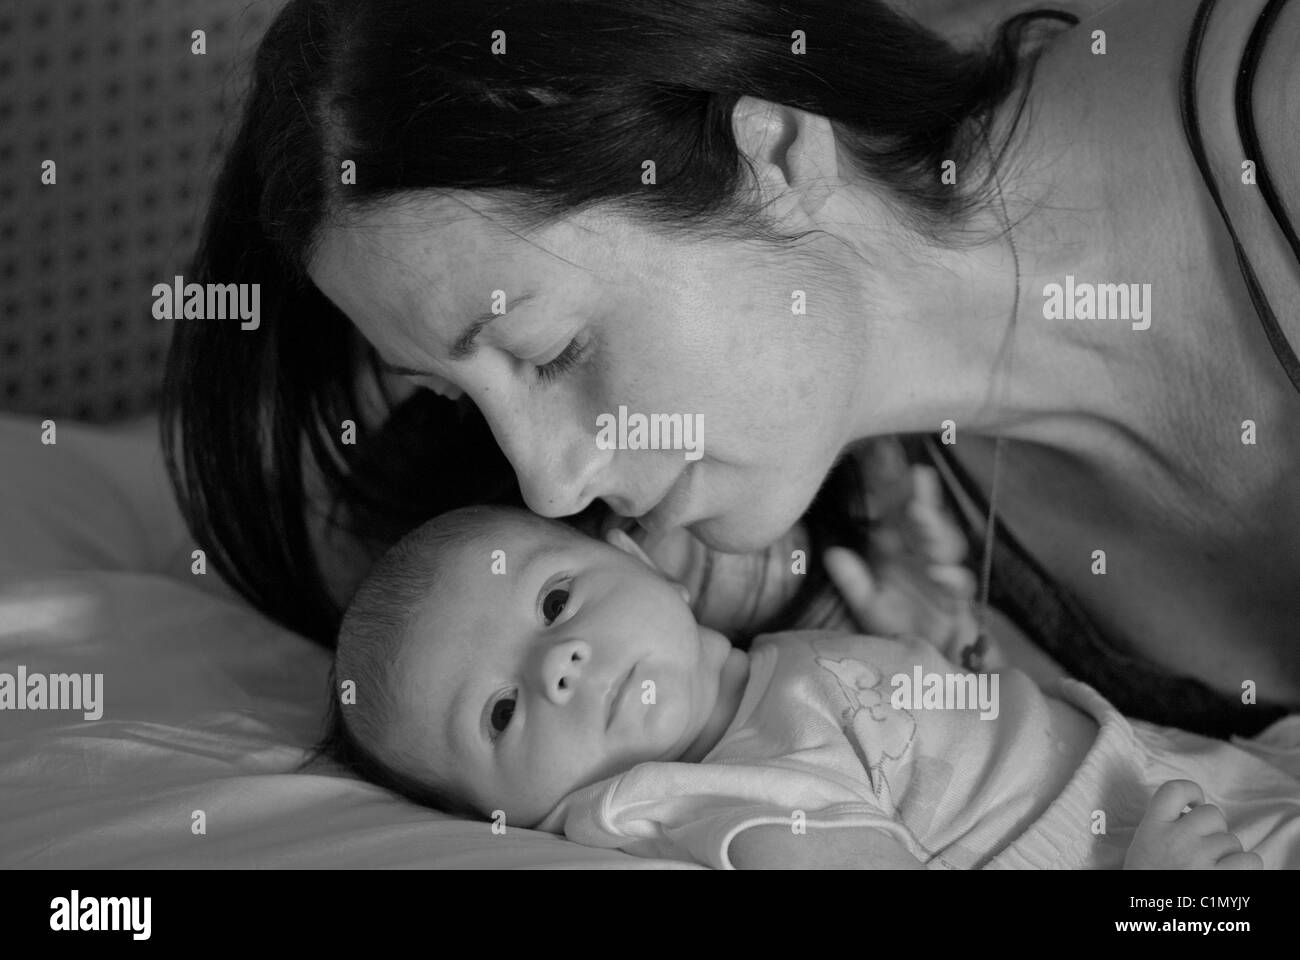 Mother's Love Behavior for her Newborn Daughter - Stock Image